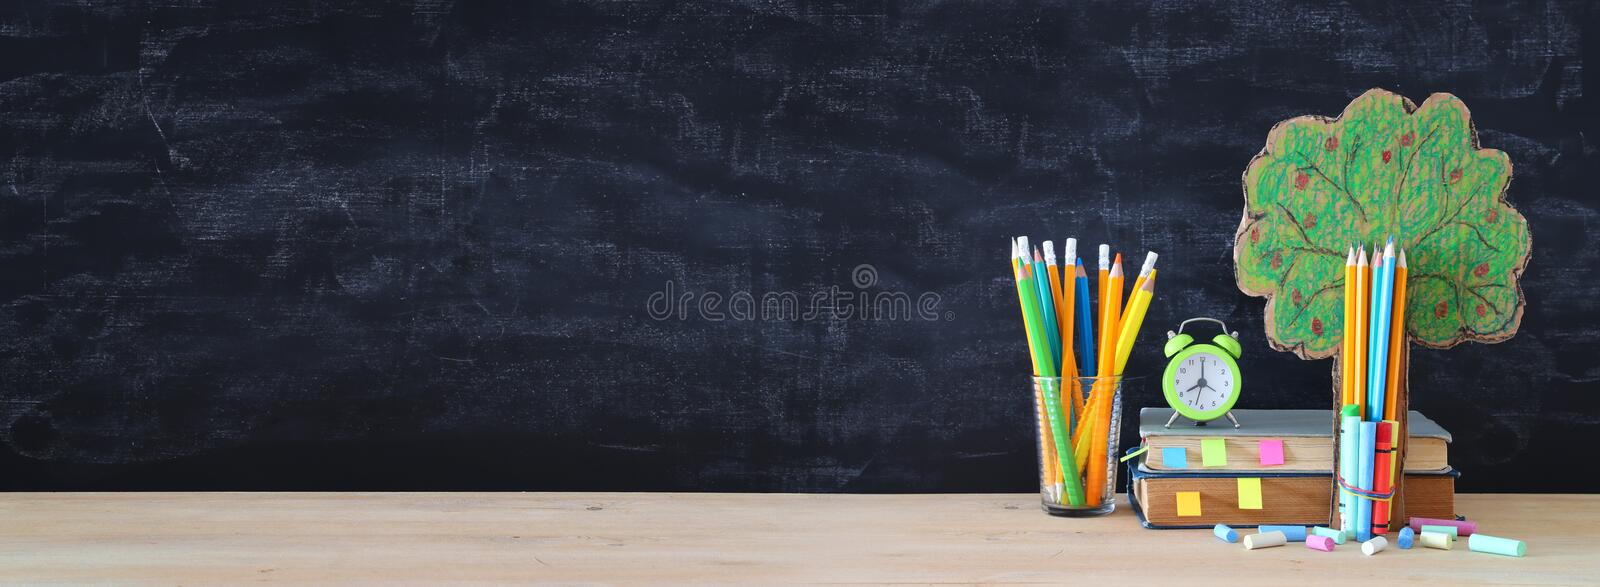 Back to school concept. tree of knowledge and pencils in front of classroom blackboard. royalty free illustration